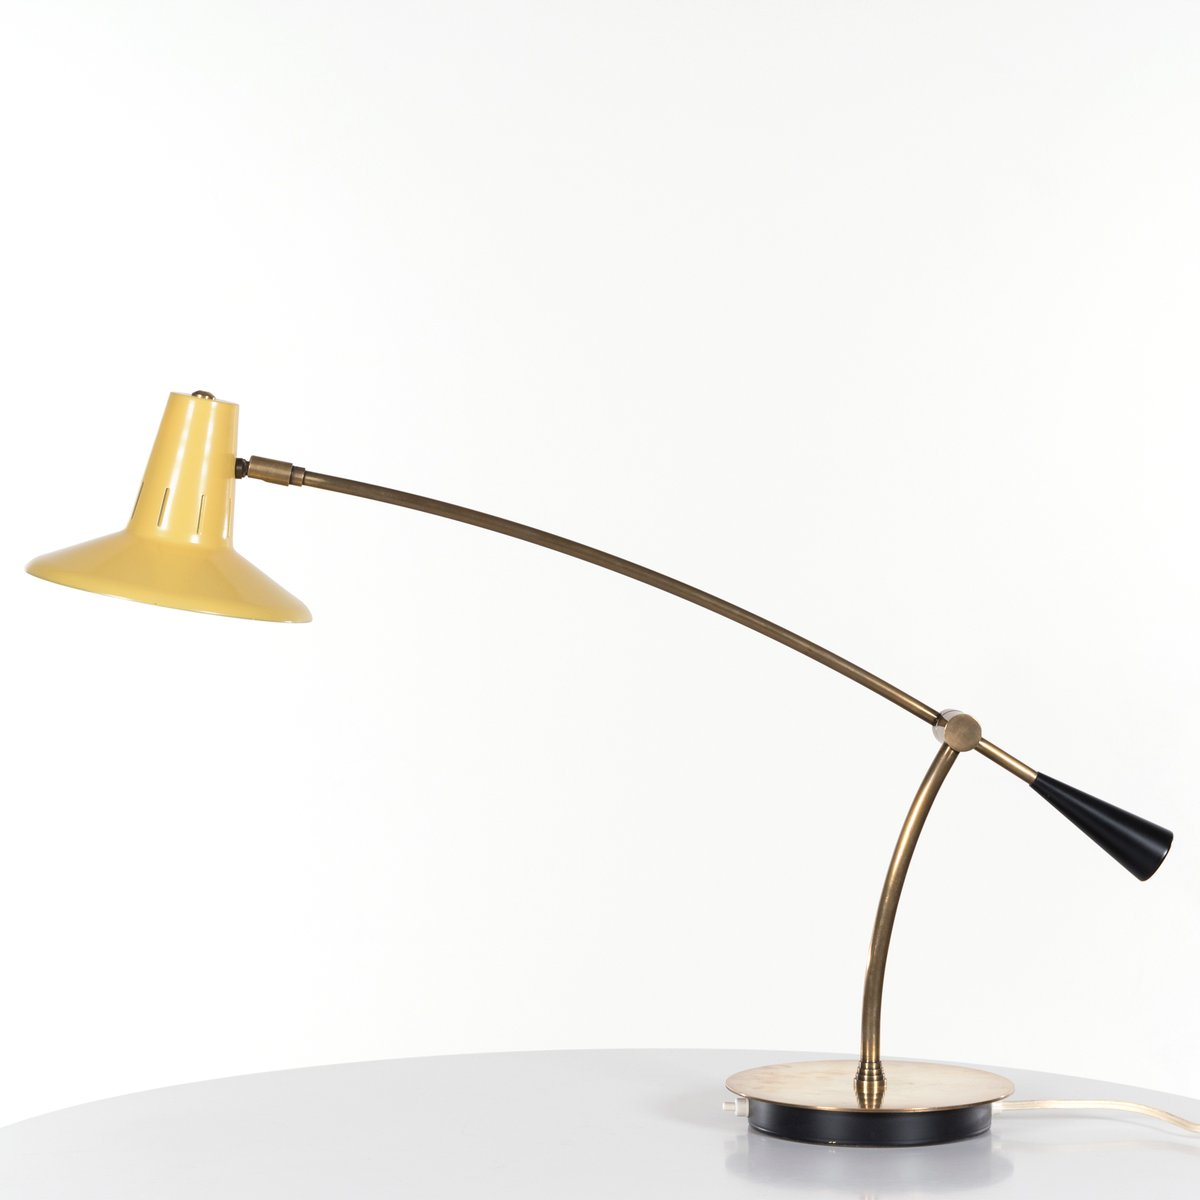 Dutch Vintage Desk Or Table Lamp